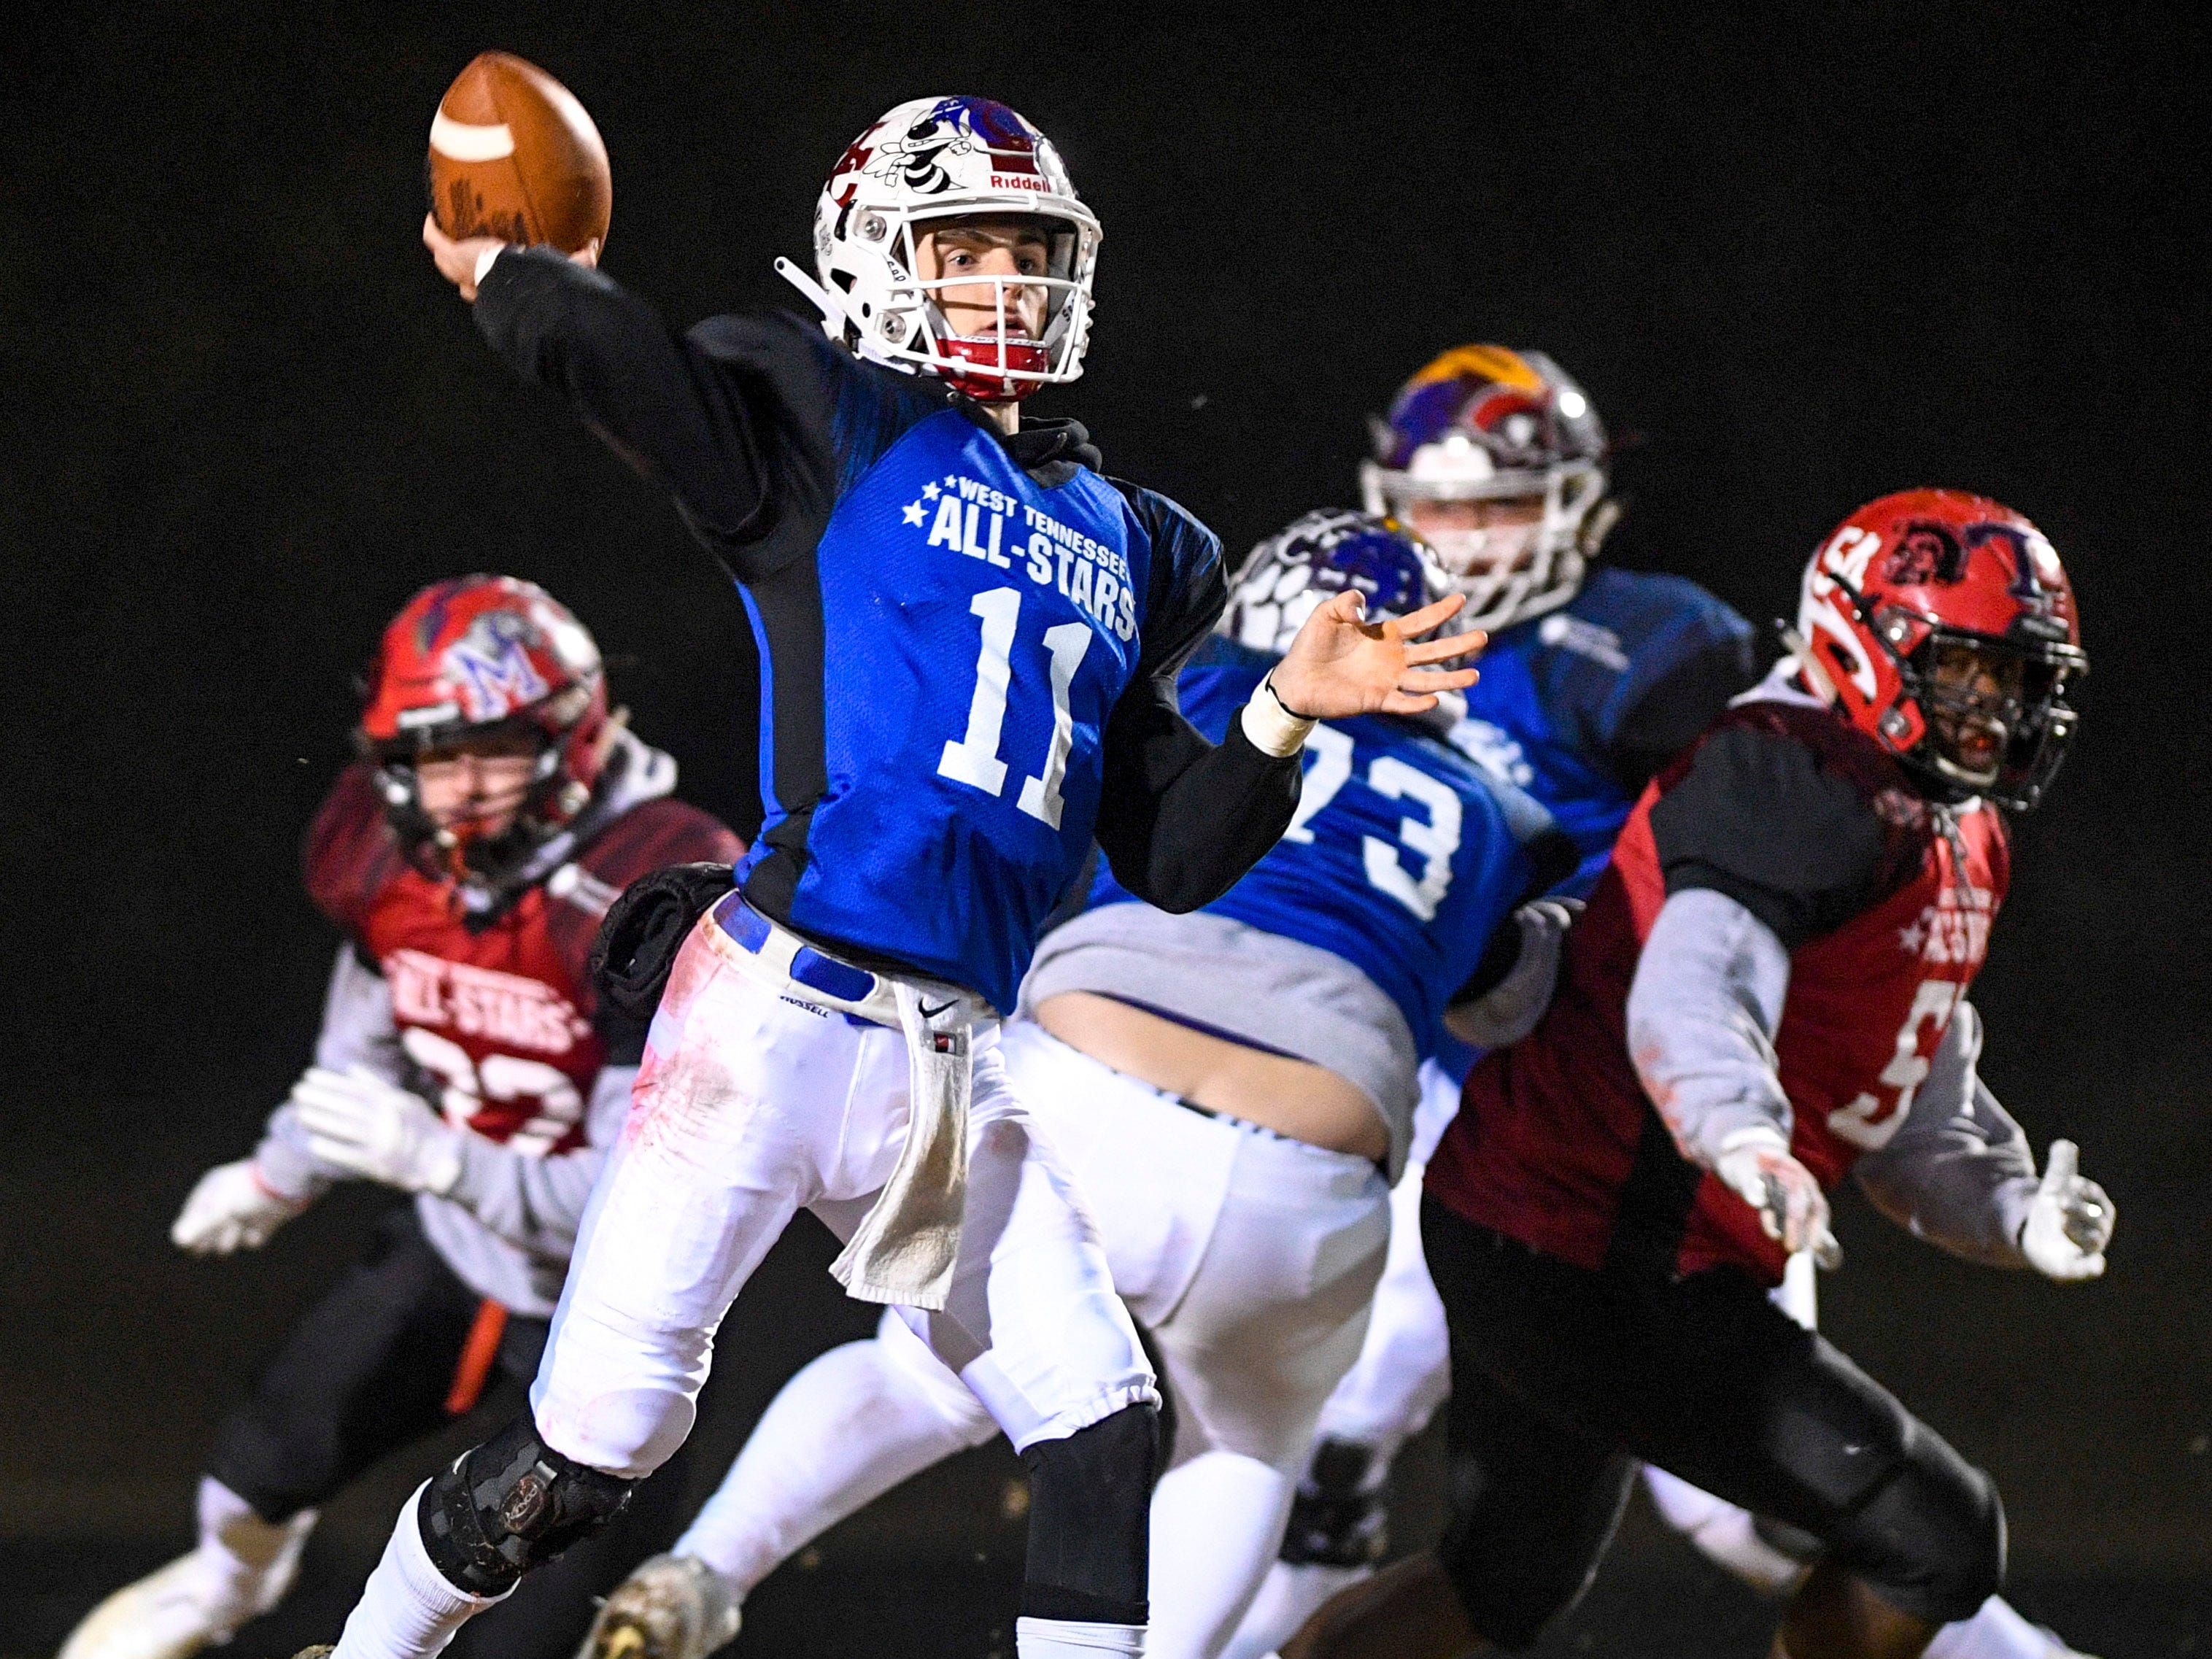 Henry Co's Will Parrish (11) looks to make a pass during the West Tennessee All-Star football game at University School of Jackson in Jackson, Tenn., on Friday, Dec. 7, 2018.